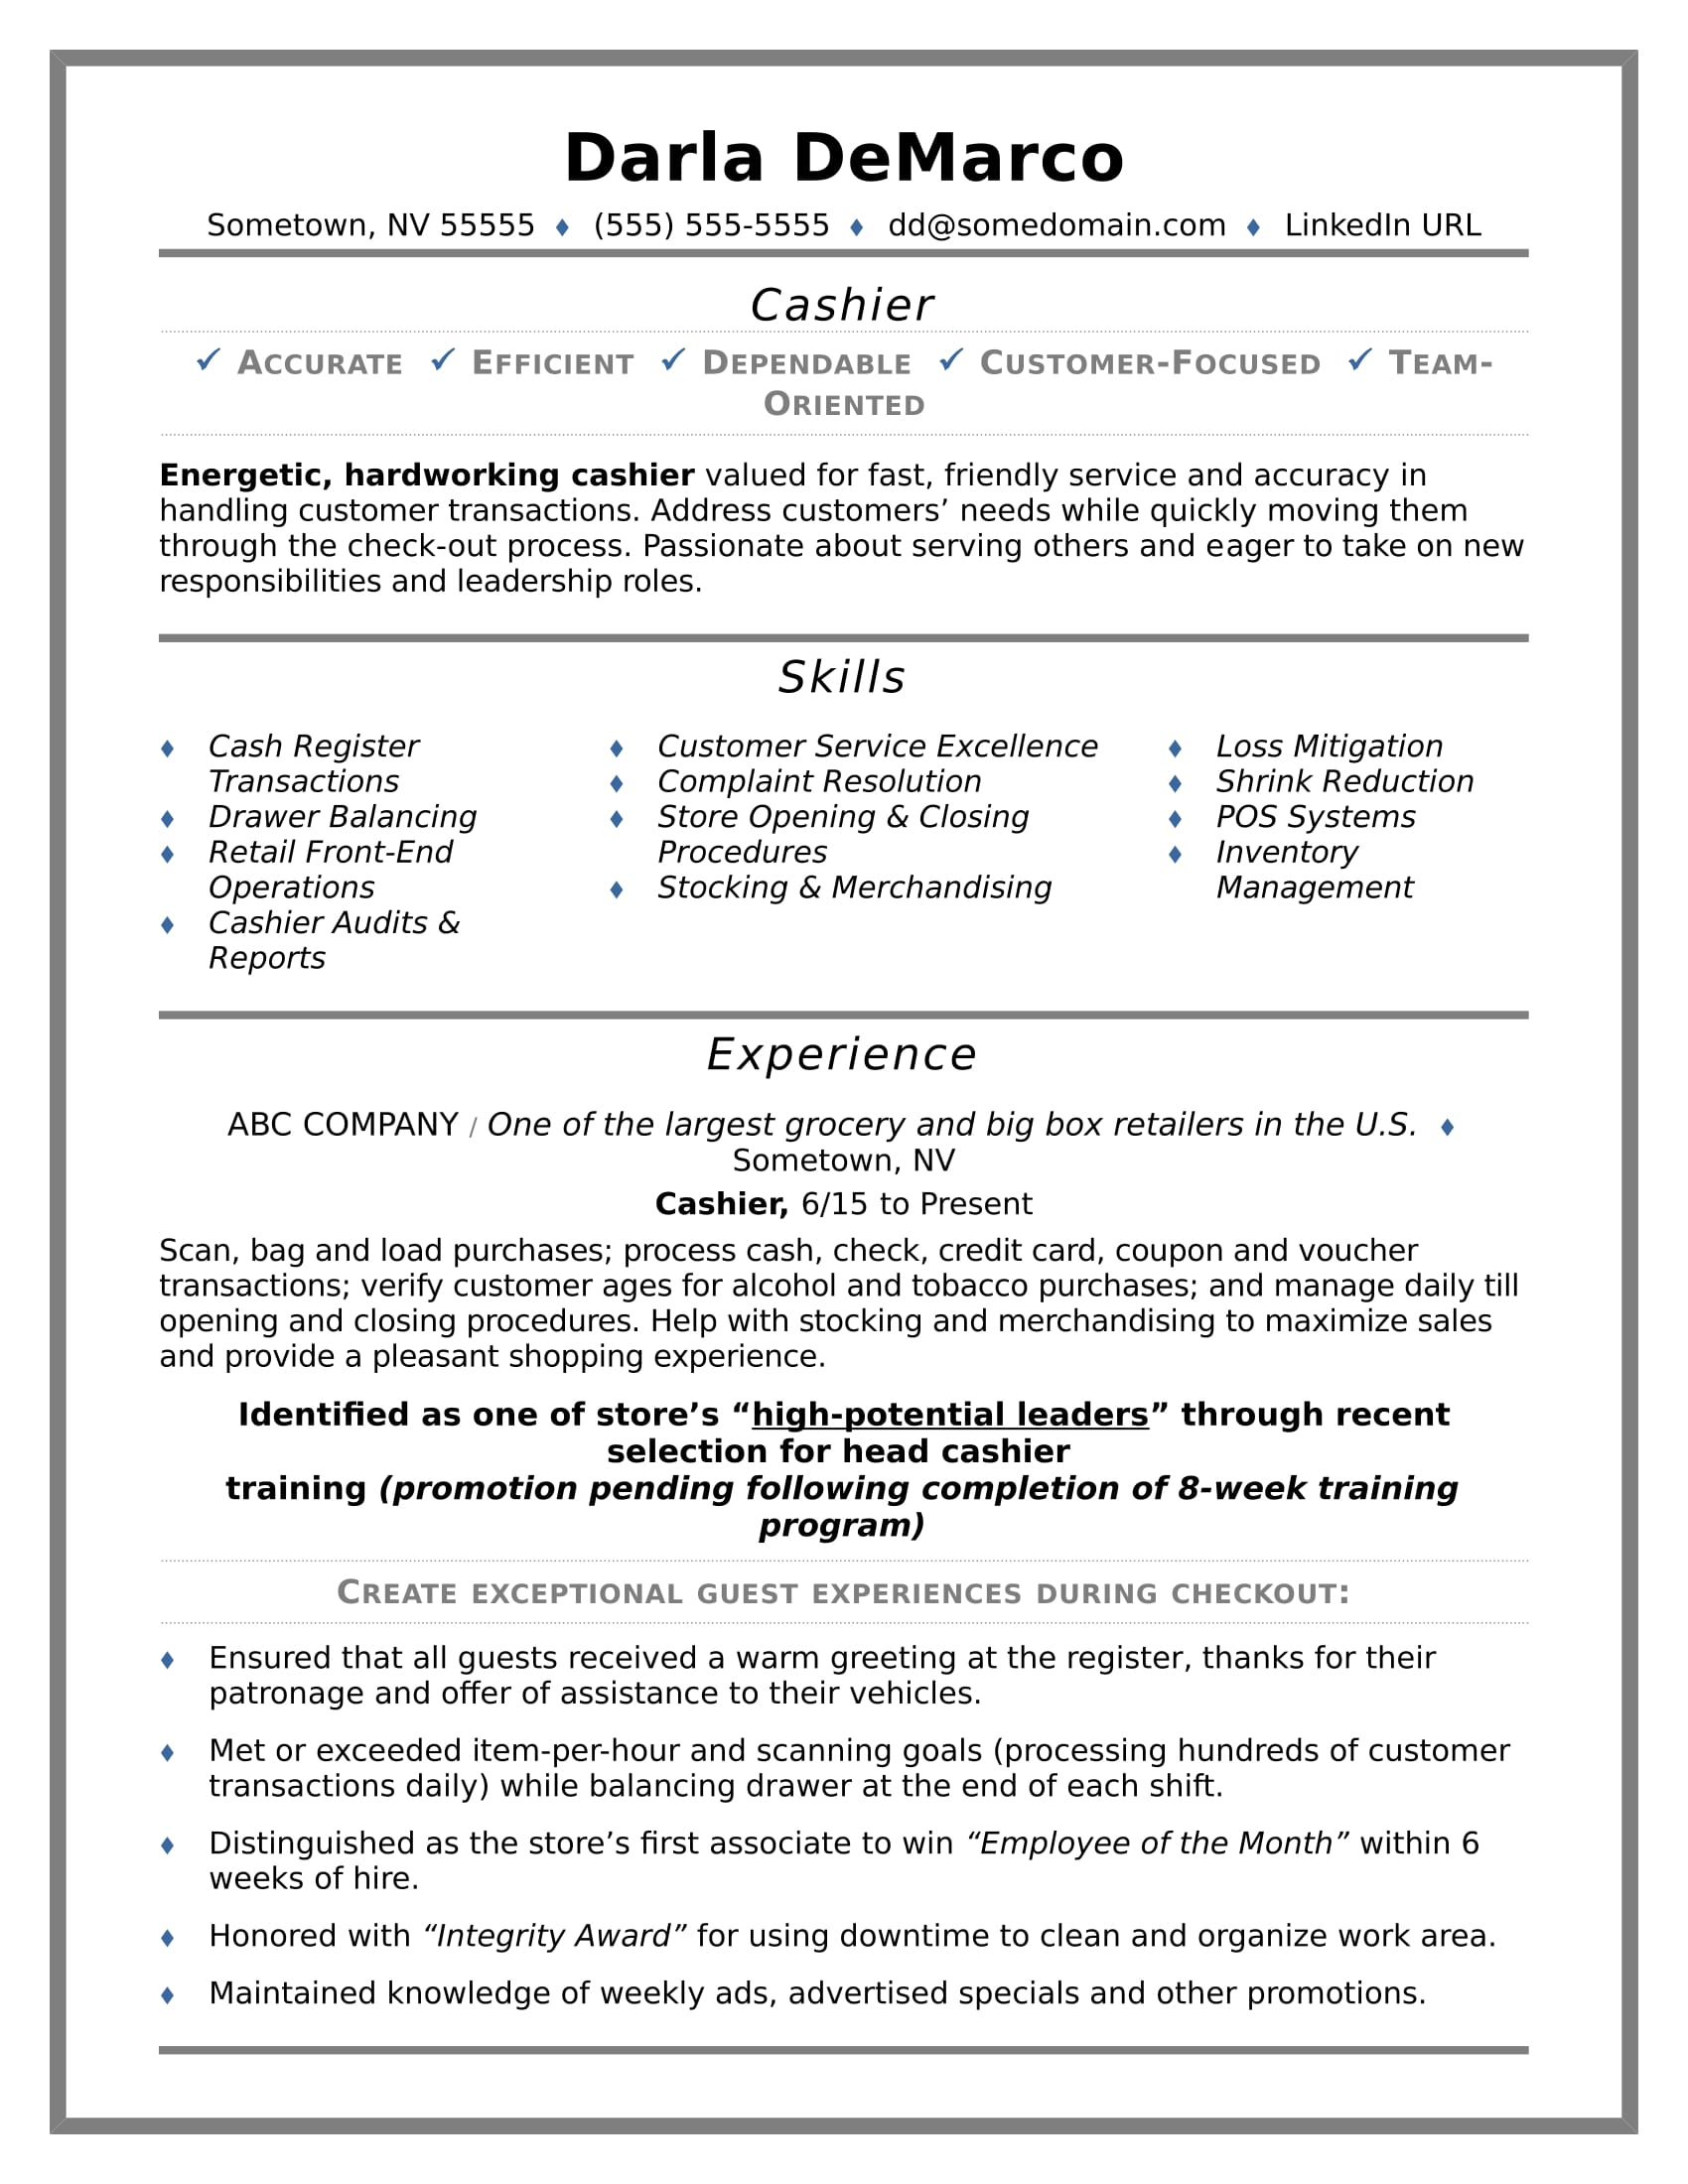 Cashier Job Description Resume Cool Cashier Resume Sample Monster